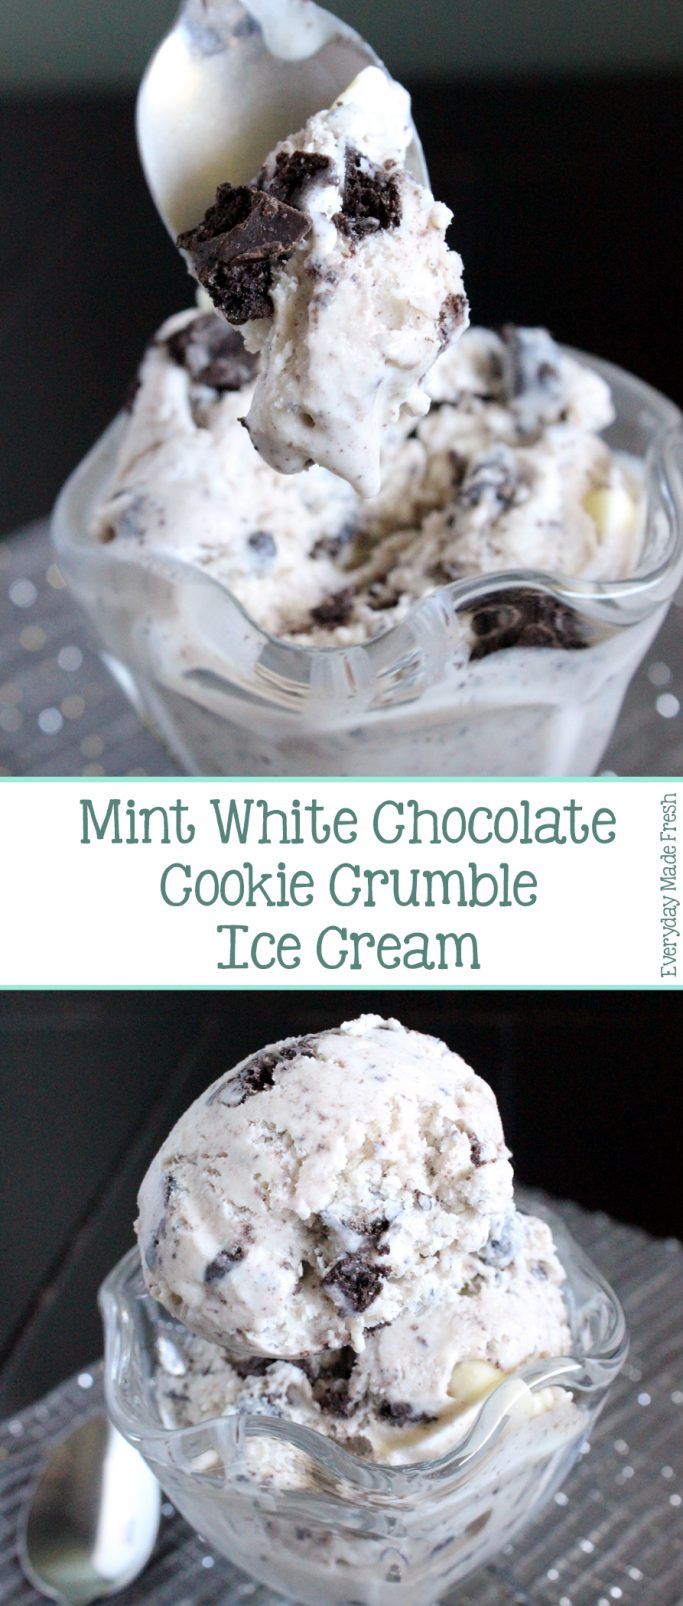 Everyone will want to fill their bowls with this Mint White Chocolate Cookie Crumble Ice Cream. Creamy homemade vanilla ice cream swirled with white chocolate and mint chocolate cookies make this ice cream taste like Christmas! | EverydayMadeFresh.com